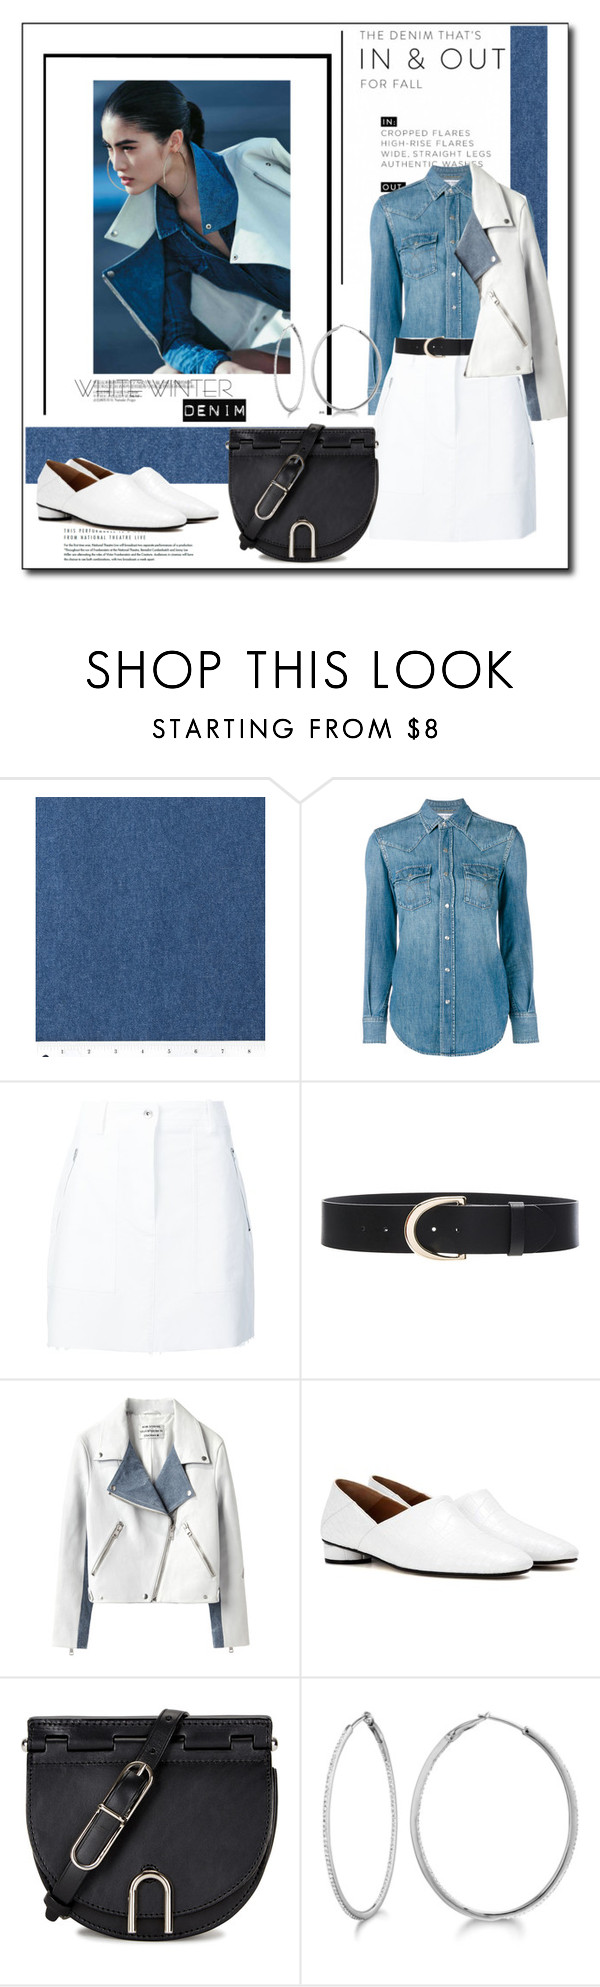 """""""White Winter Denim"""" by littlefeather1 ❤ liked on Polyvore featuring Yves Saint Laurent, rag & bone, Frame Denim, Acne Studios, The Row, 3.1 Phillip Lim, Allurez, topsets and polyvoreeditorial"""